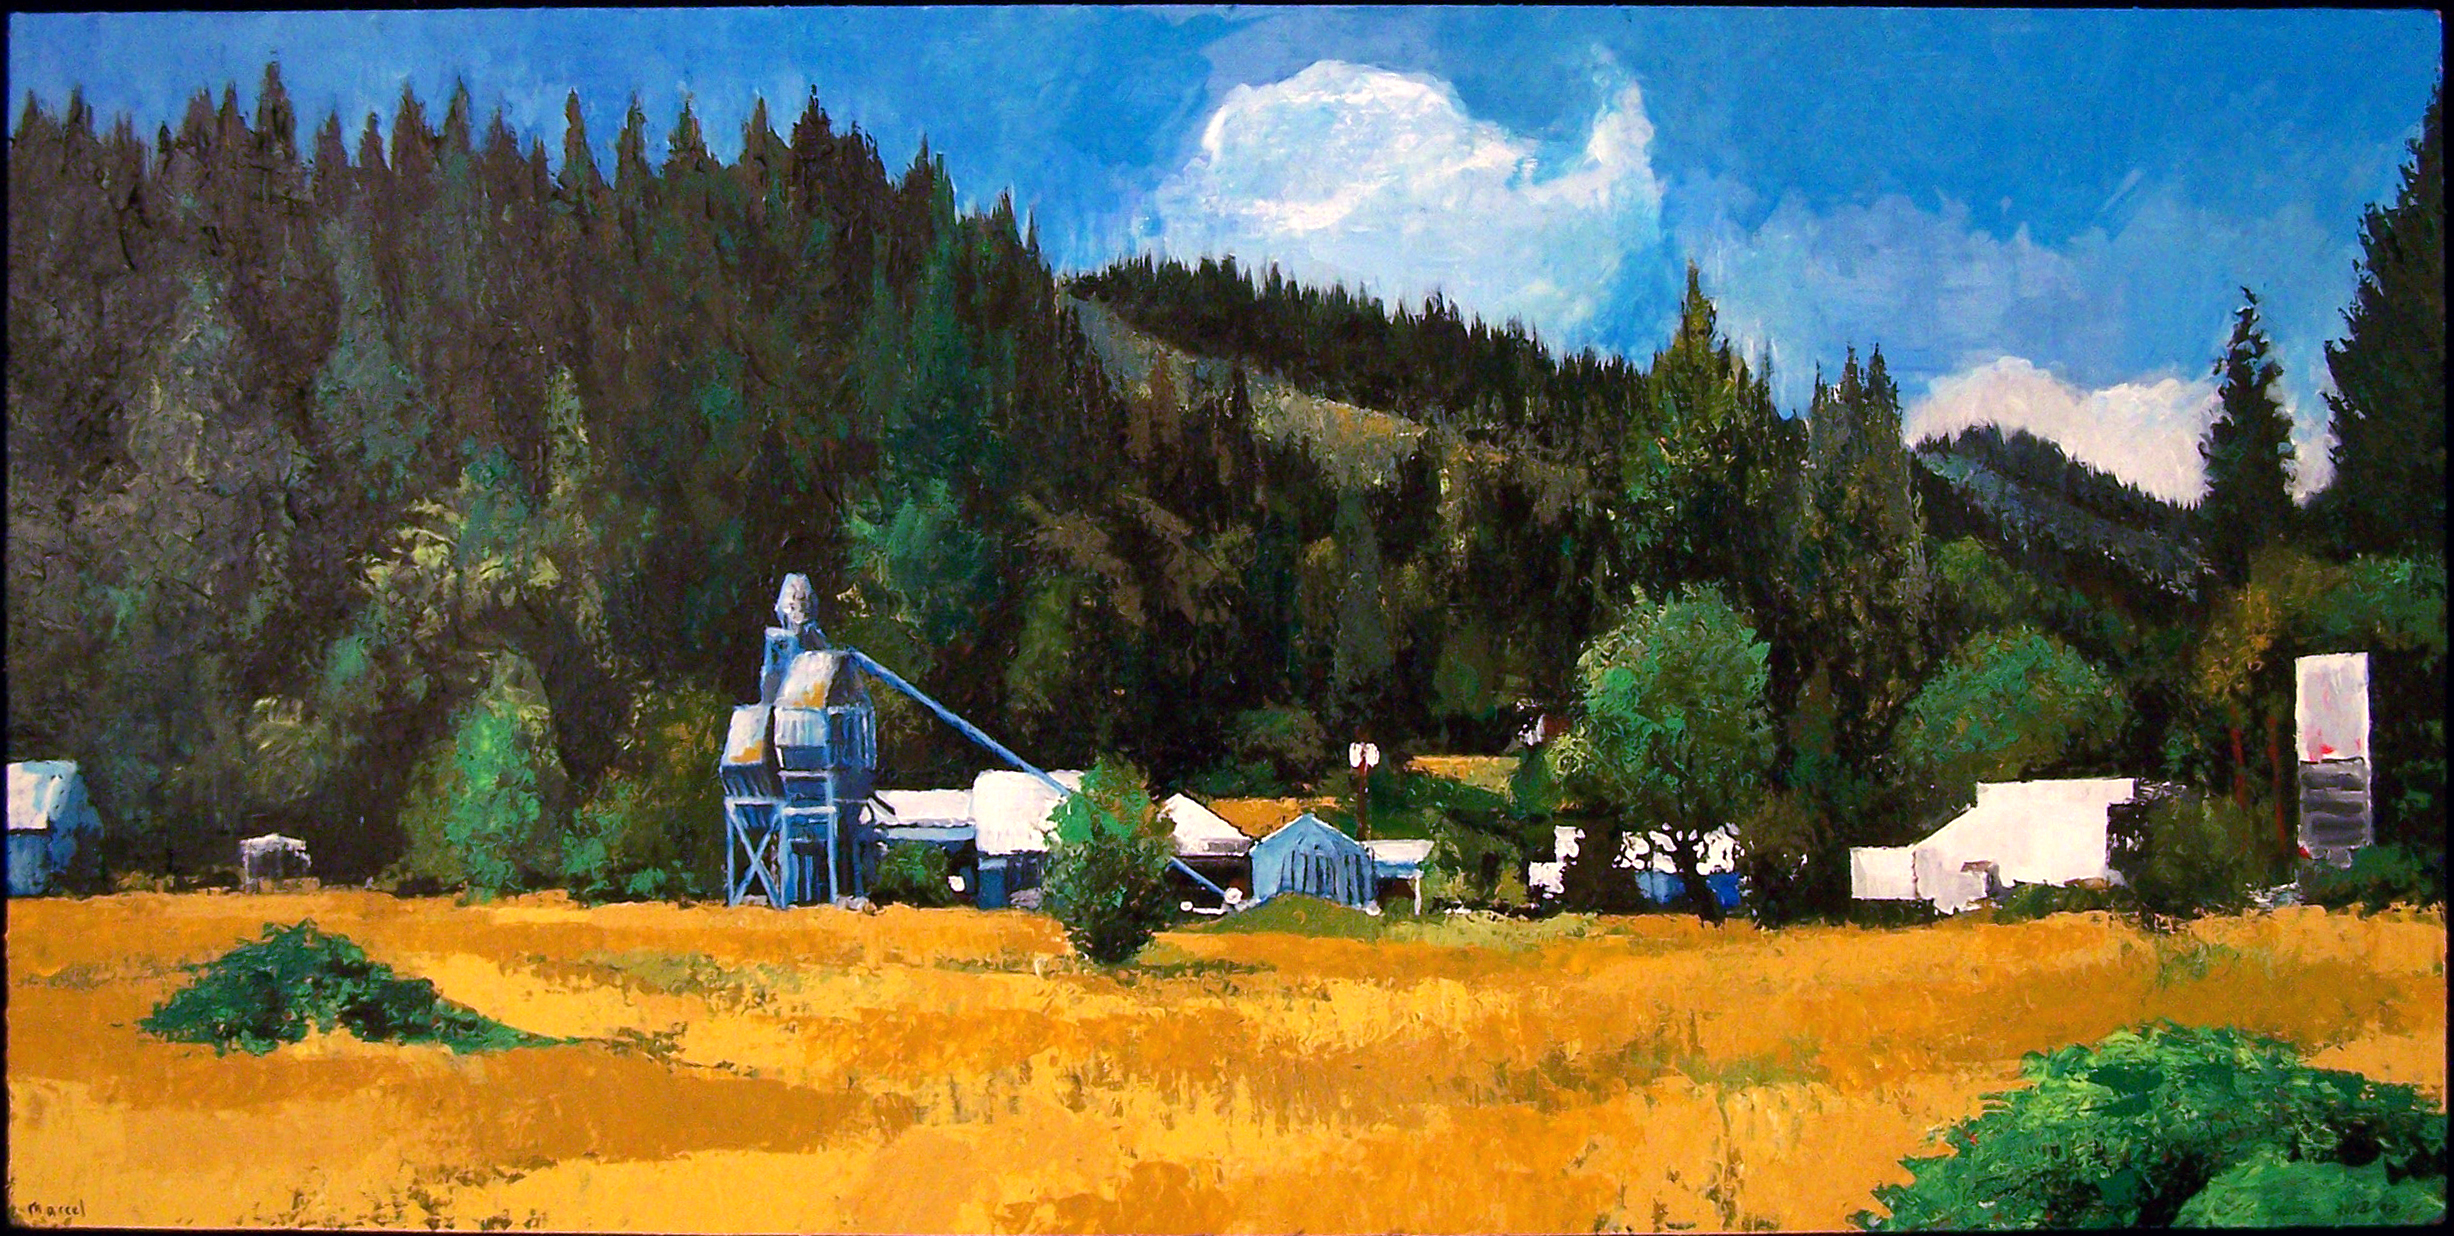 NMarcel-2007-acrylic on panel-view from Highway 6.jpg